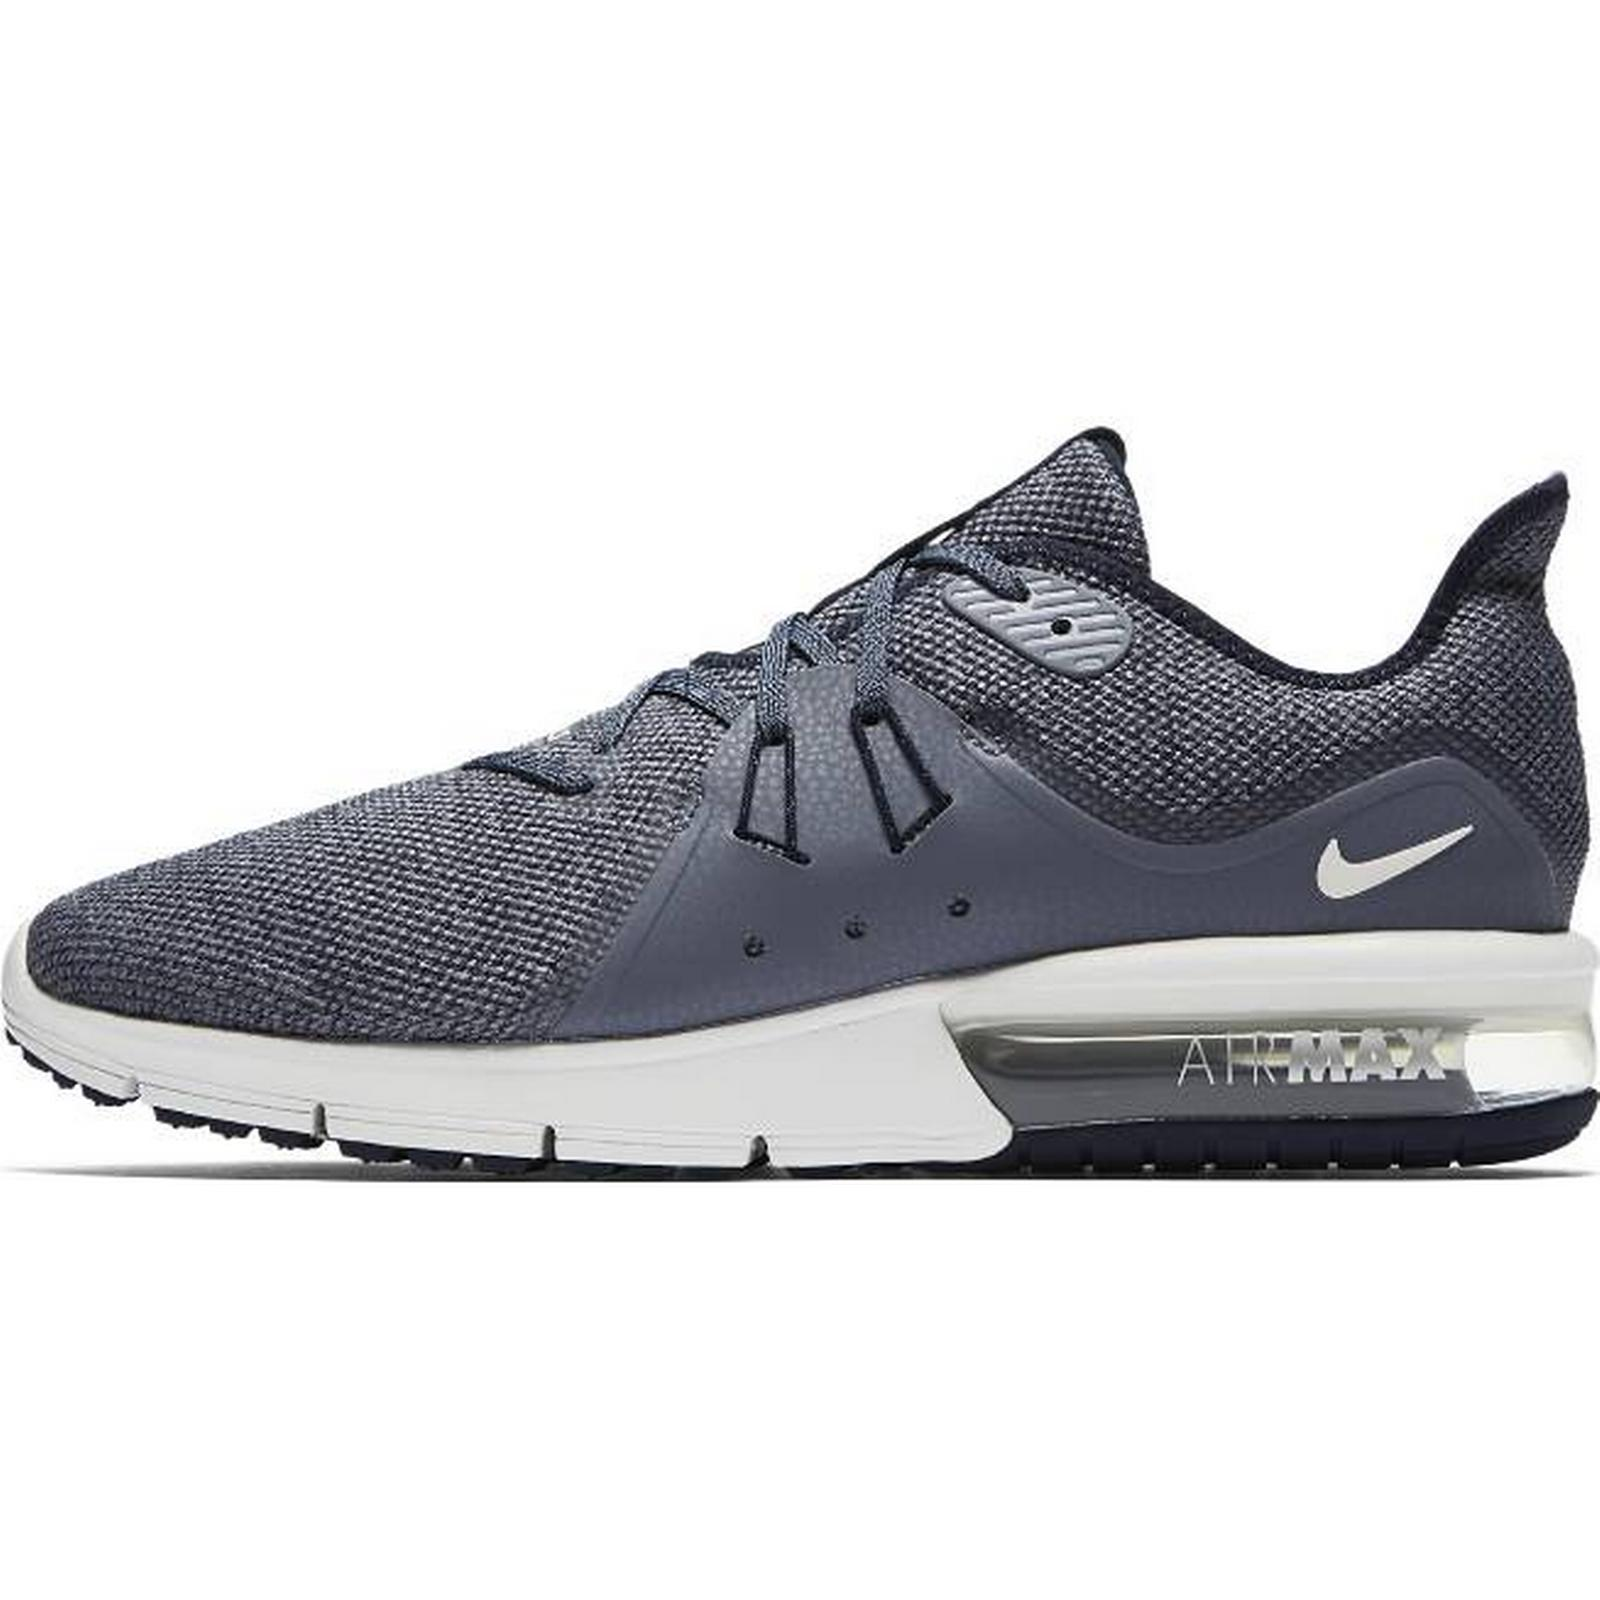 Man's/Woman's - Biegania NIKE Męskie Buty Do Biegania - Nike Air Max Sequent 3 -  Exquisite craftsmanship d6214d